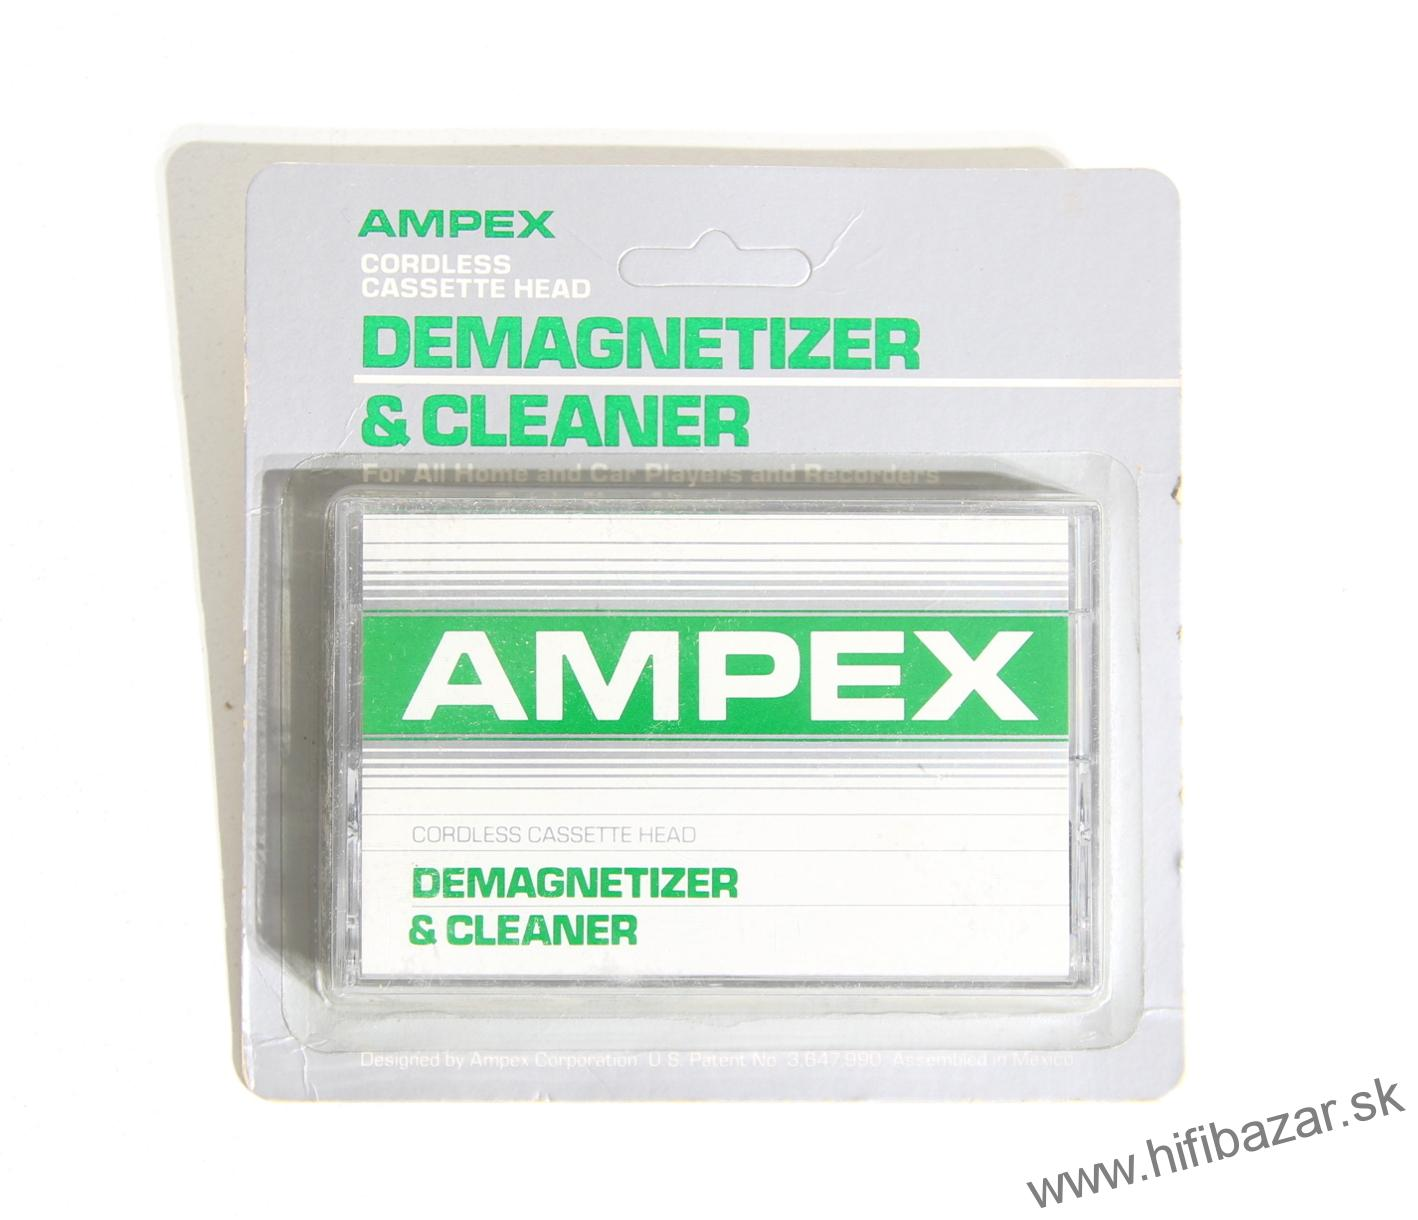 AMPEX Demagnetizer & Cleaner